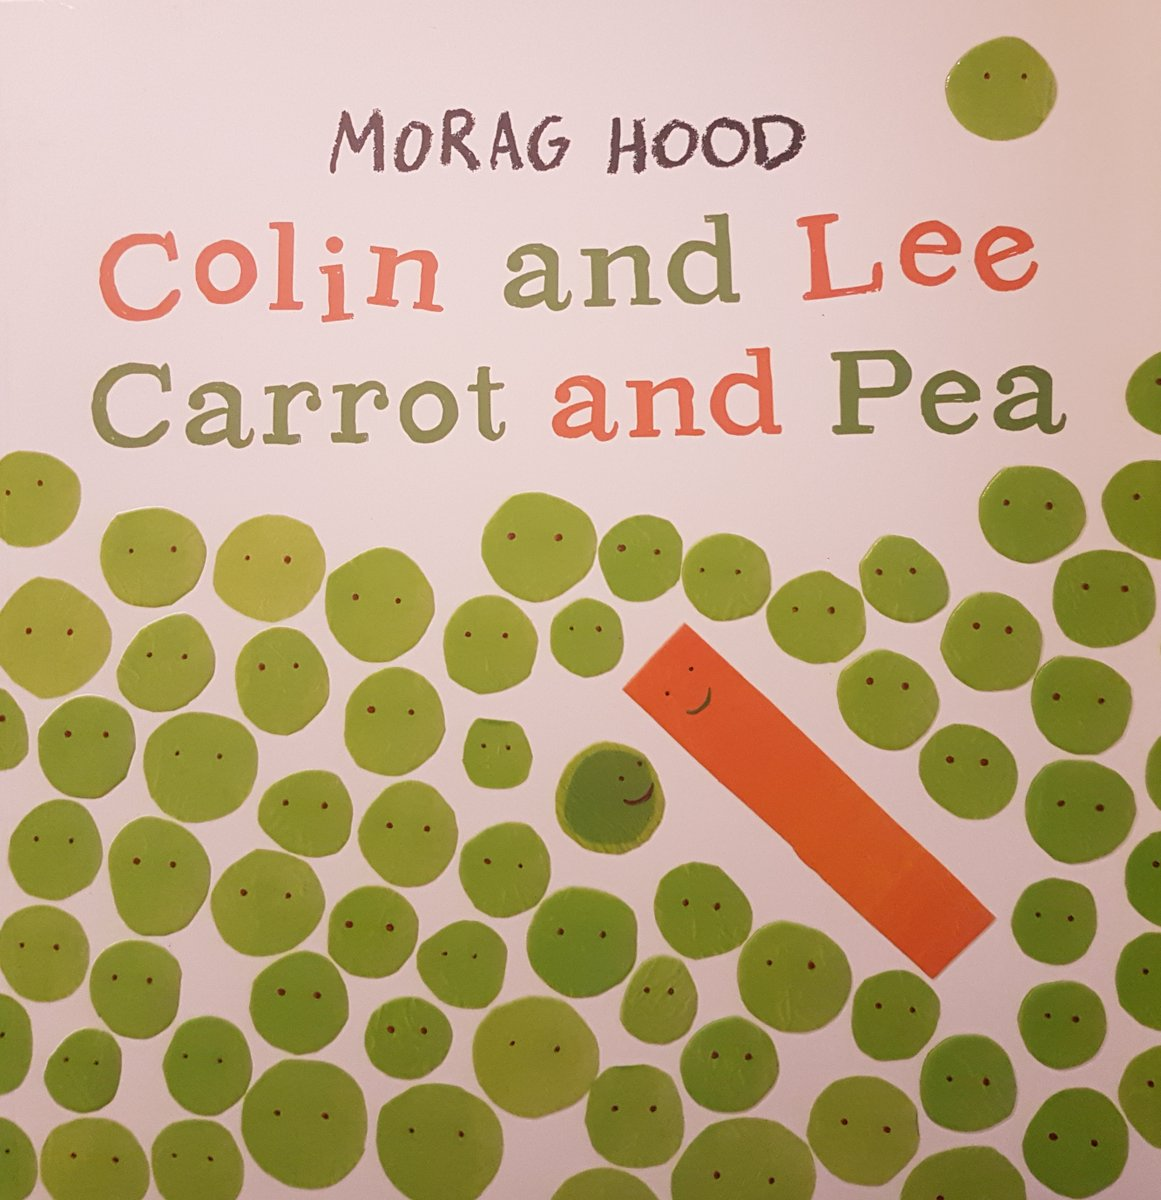 Join us tomorrow at 2pm for two fantastic stories about friendship! 'Colin and Lee, Carrot and Pea' by @MoragHood and 'I'm Sticking with You' by @SmritiPH and Steve Small over on Facebook Live: https://t.co/IA11BVZdyK https://t.co/sgmQbRoFm4